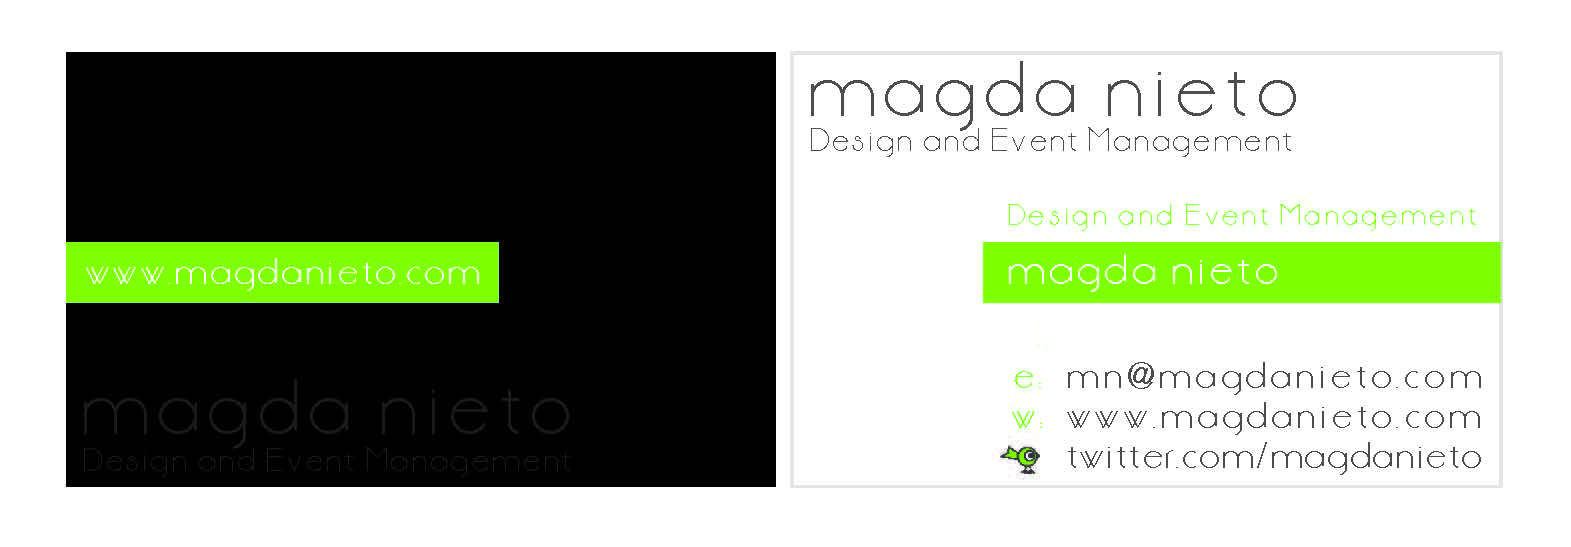 NEW BUSINESS CARD – MAGDA NIETO | Magda Nieto